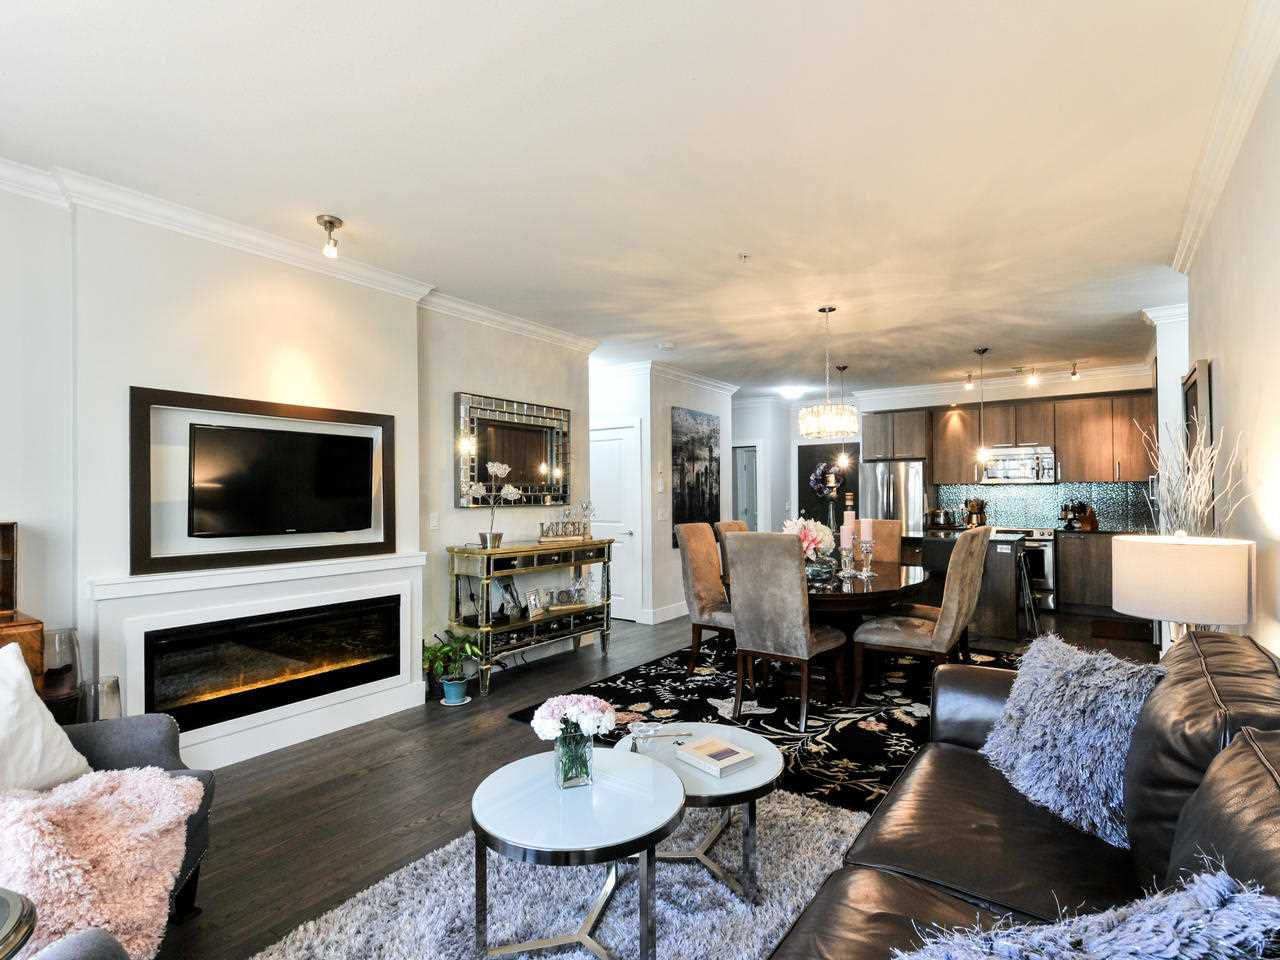 """Main Photo: C207 20211 66 Avenue in Langley: Willoughby Heights Condo for sale in """"ELEMENTS"""" : MLS®# R2383710"""